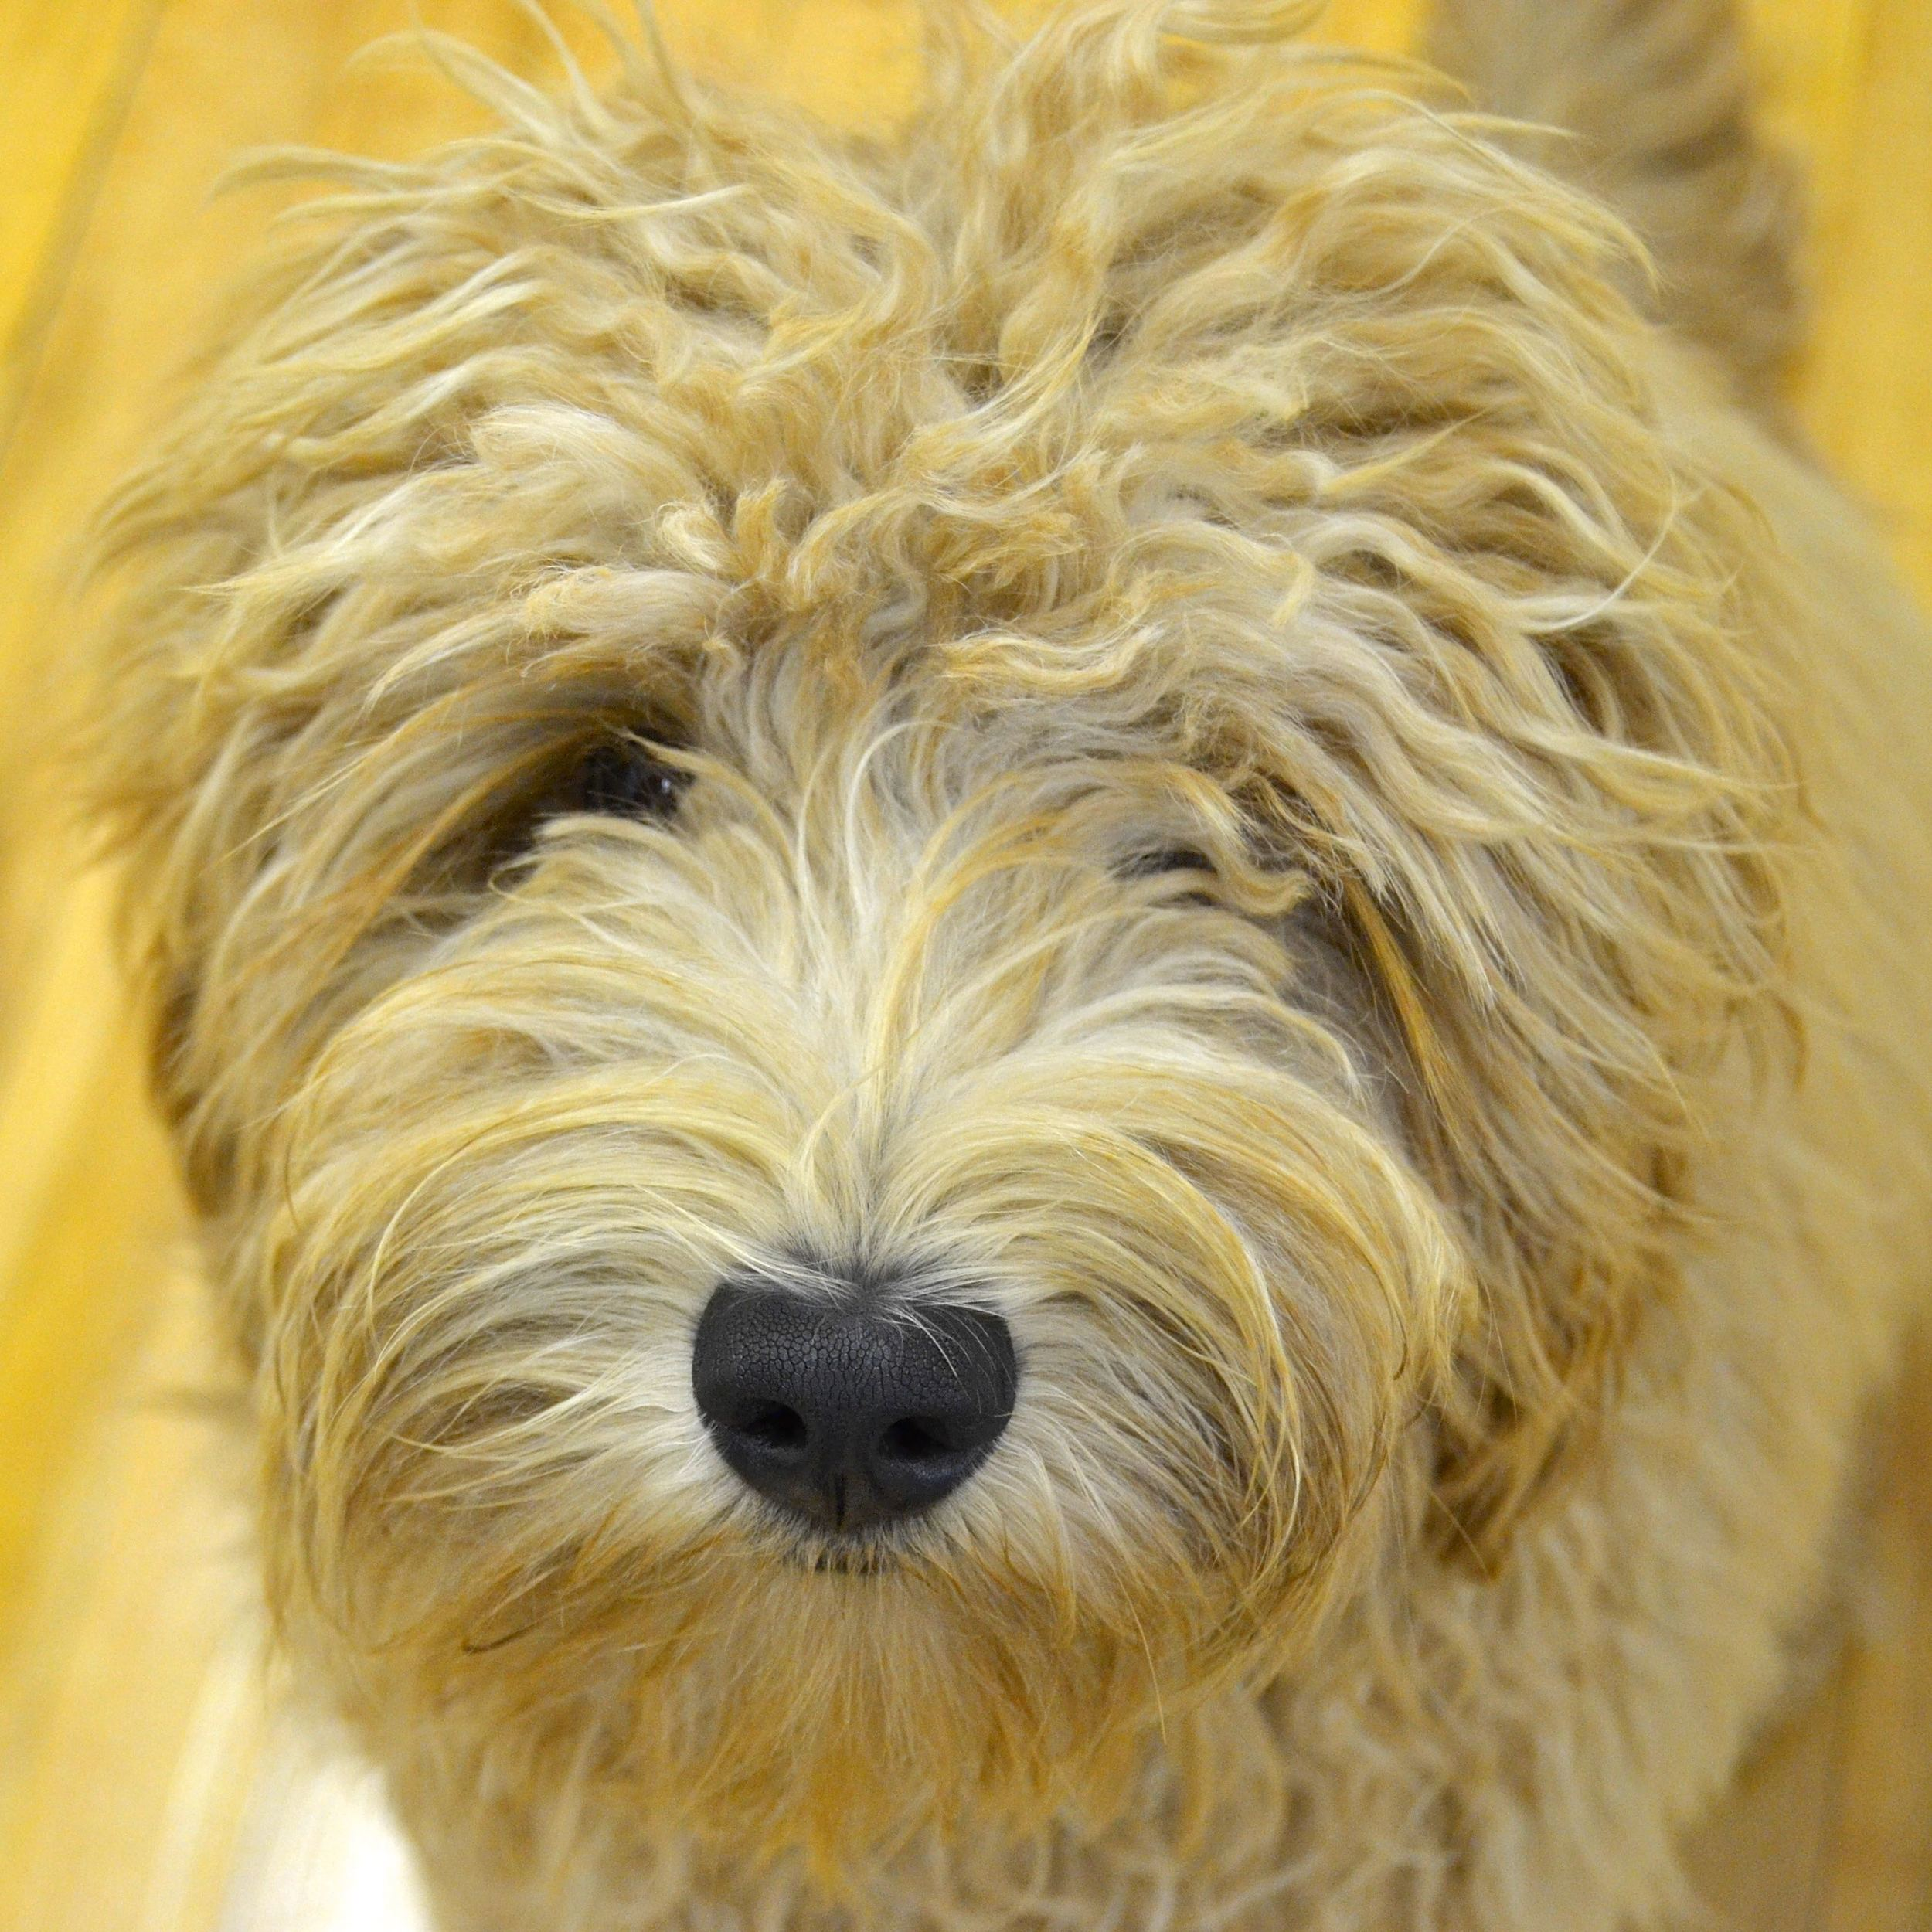 Nandi the labradoodle greets visitors with calm and gentleness.